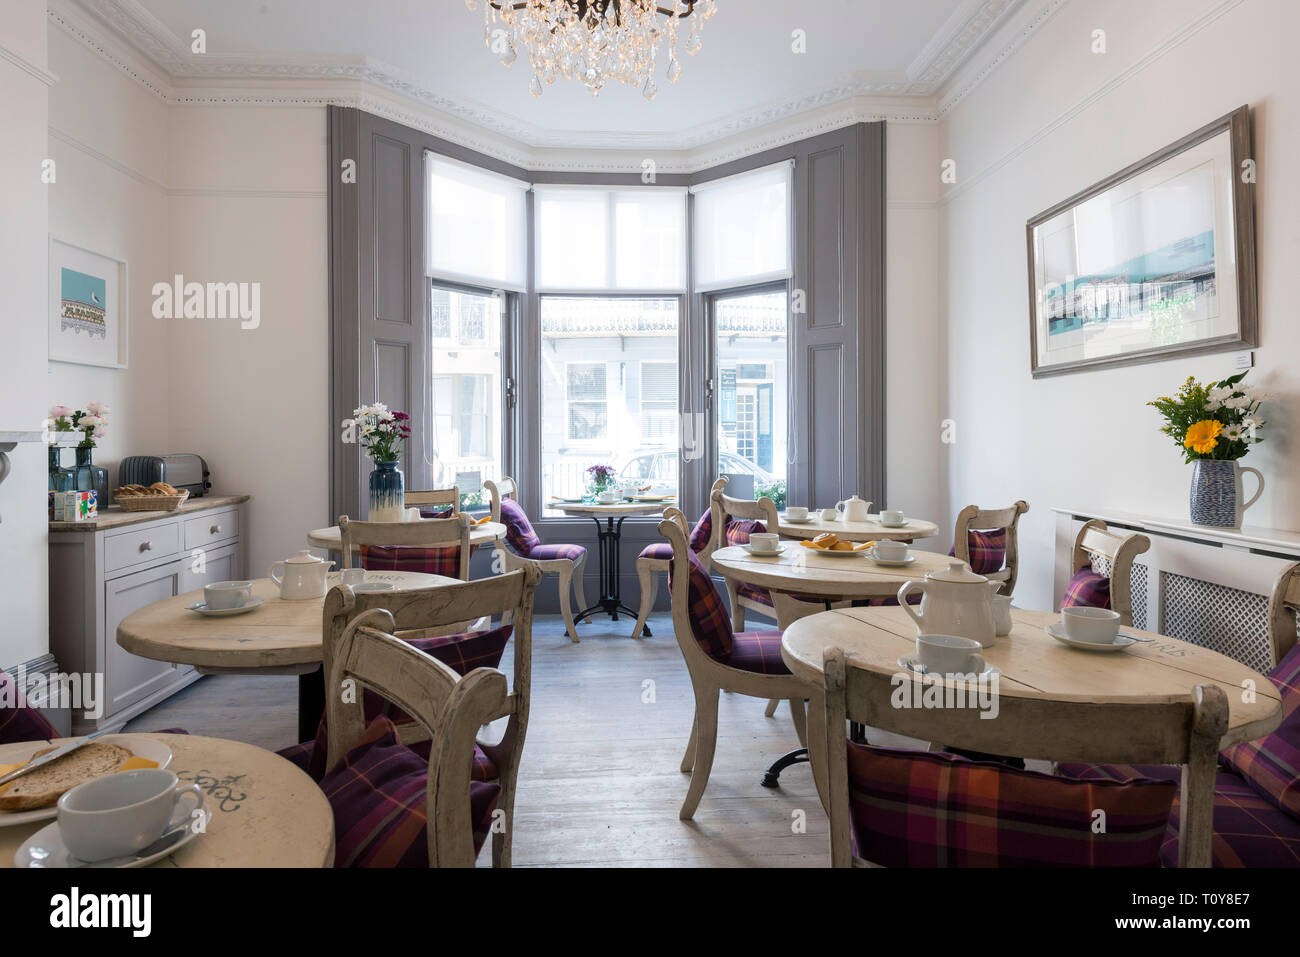 A Dining Room In A Bed And Breakfast Hotel Is Laid Out For Breakfast Stock Photo Alamy